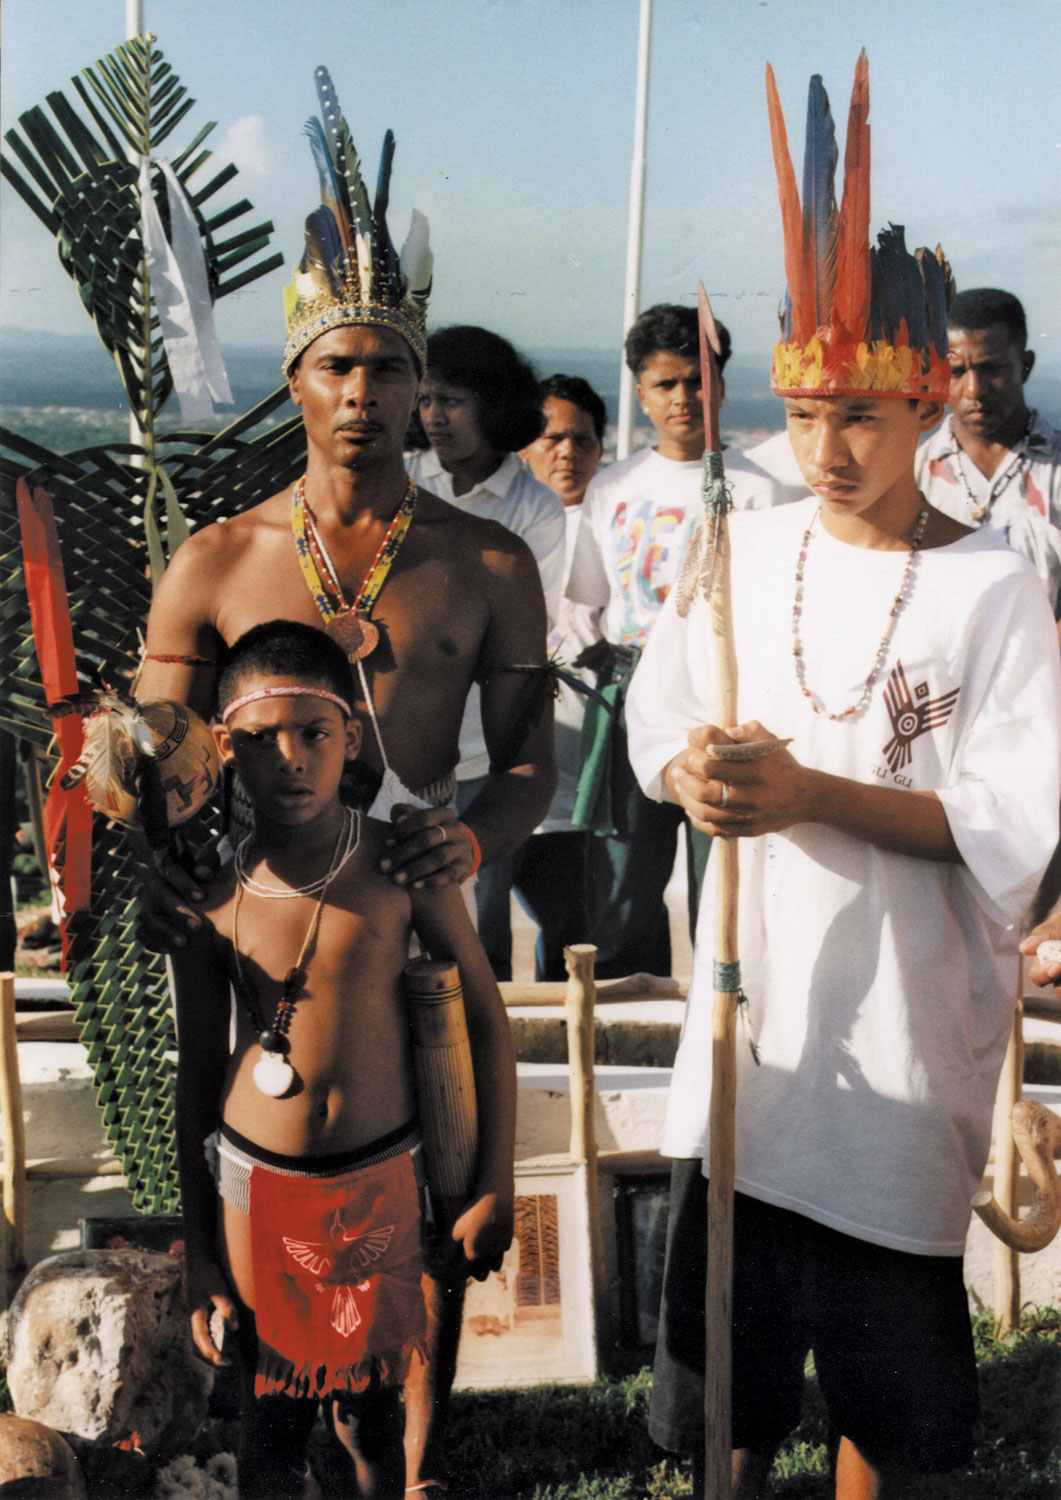 Piaiman Christo Adonis leads a smoke ceremony for Independence Day. Photograph by Courtenay Rooks